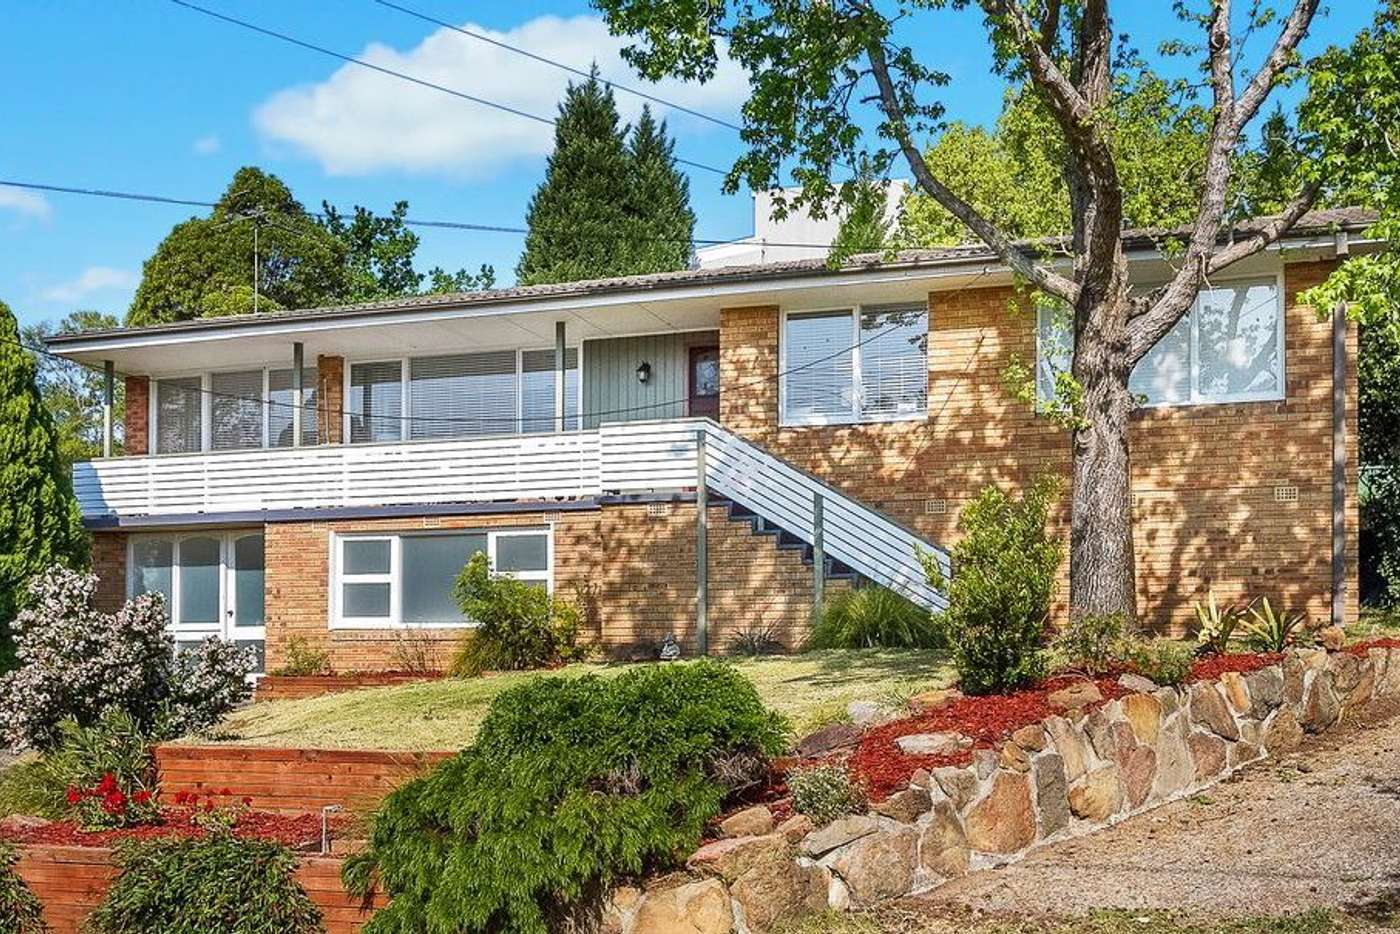 Main view of Homely house listing, 6 Frensham Place, Dural NSW 2158